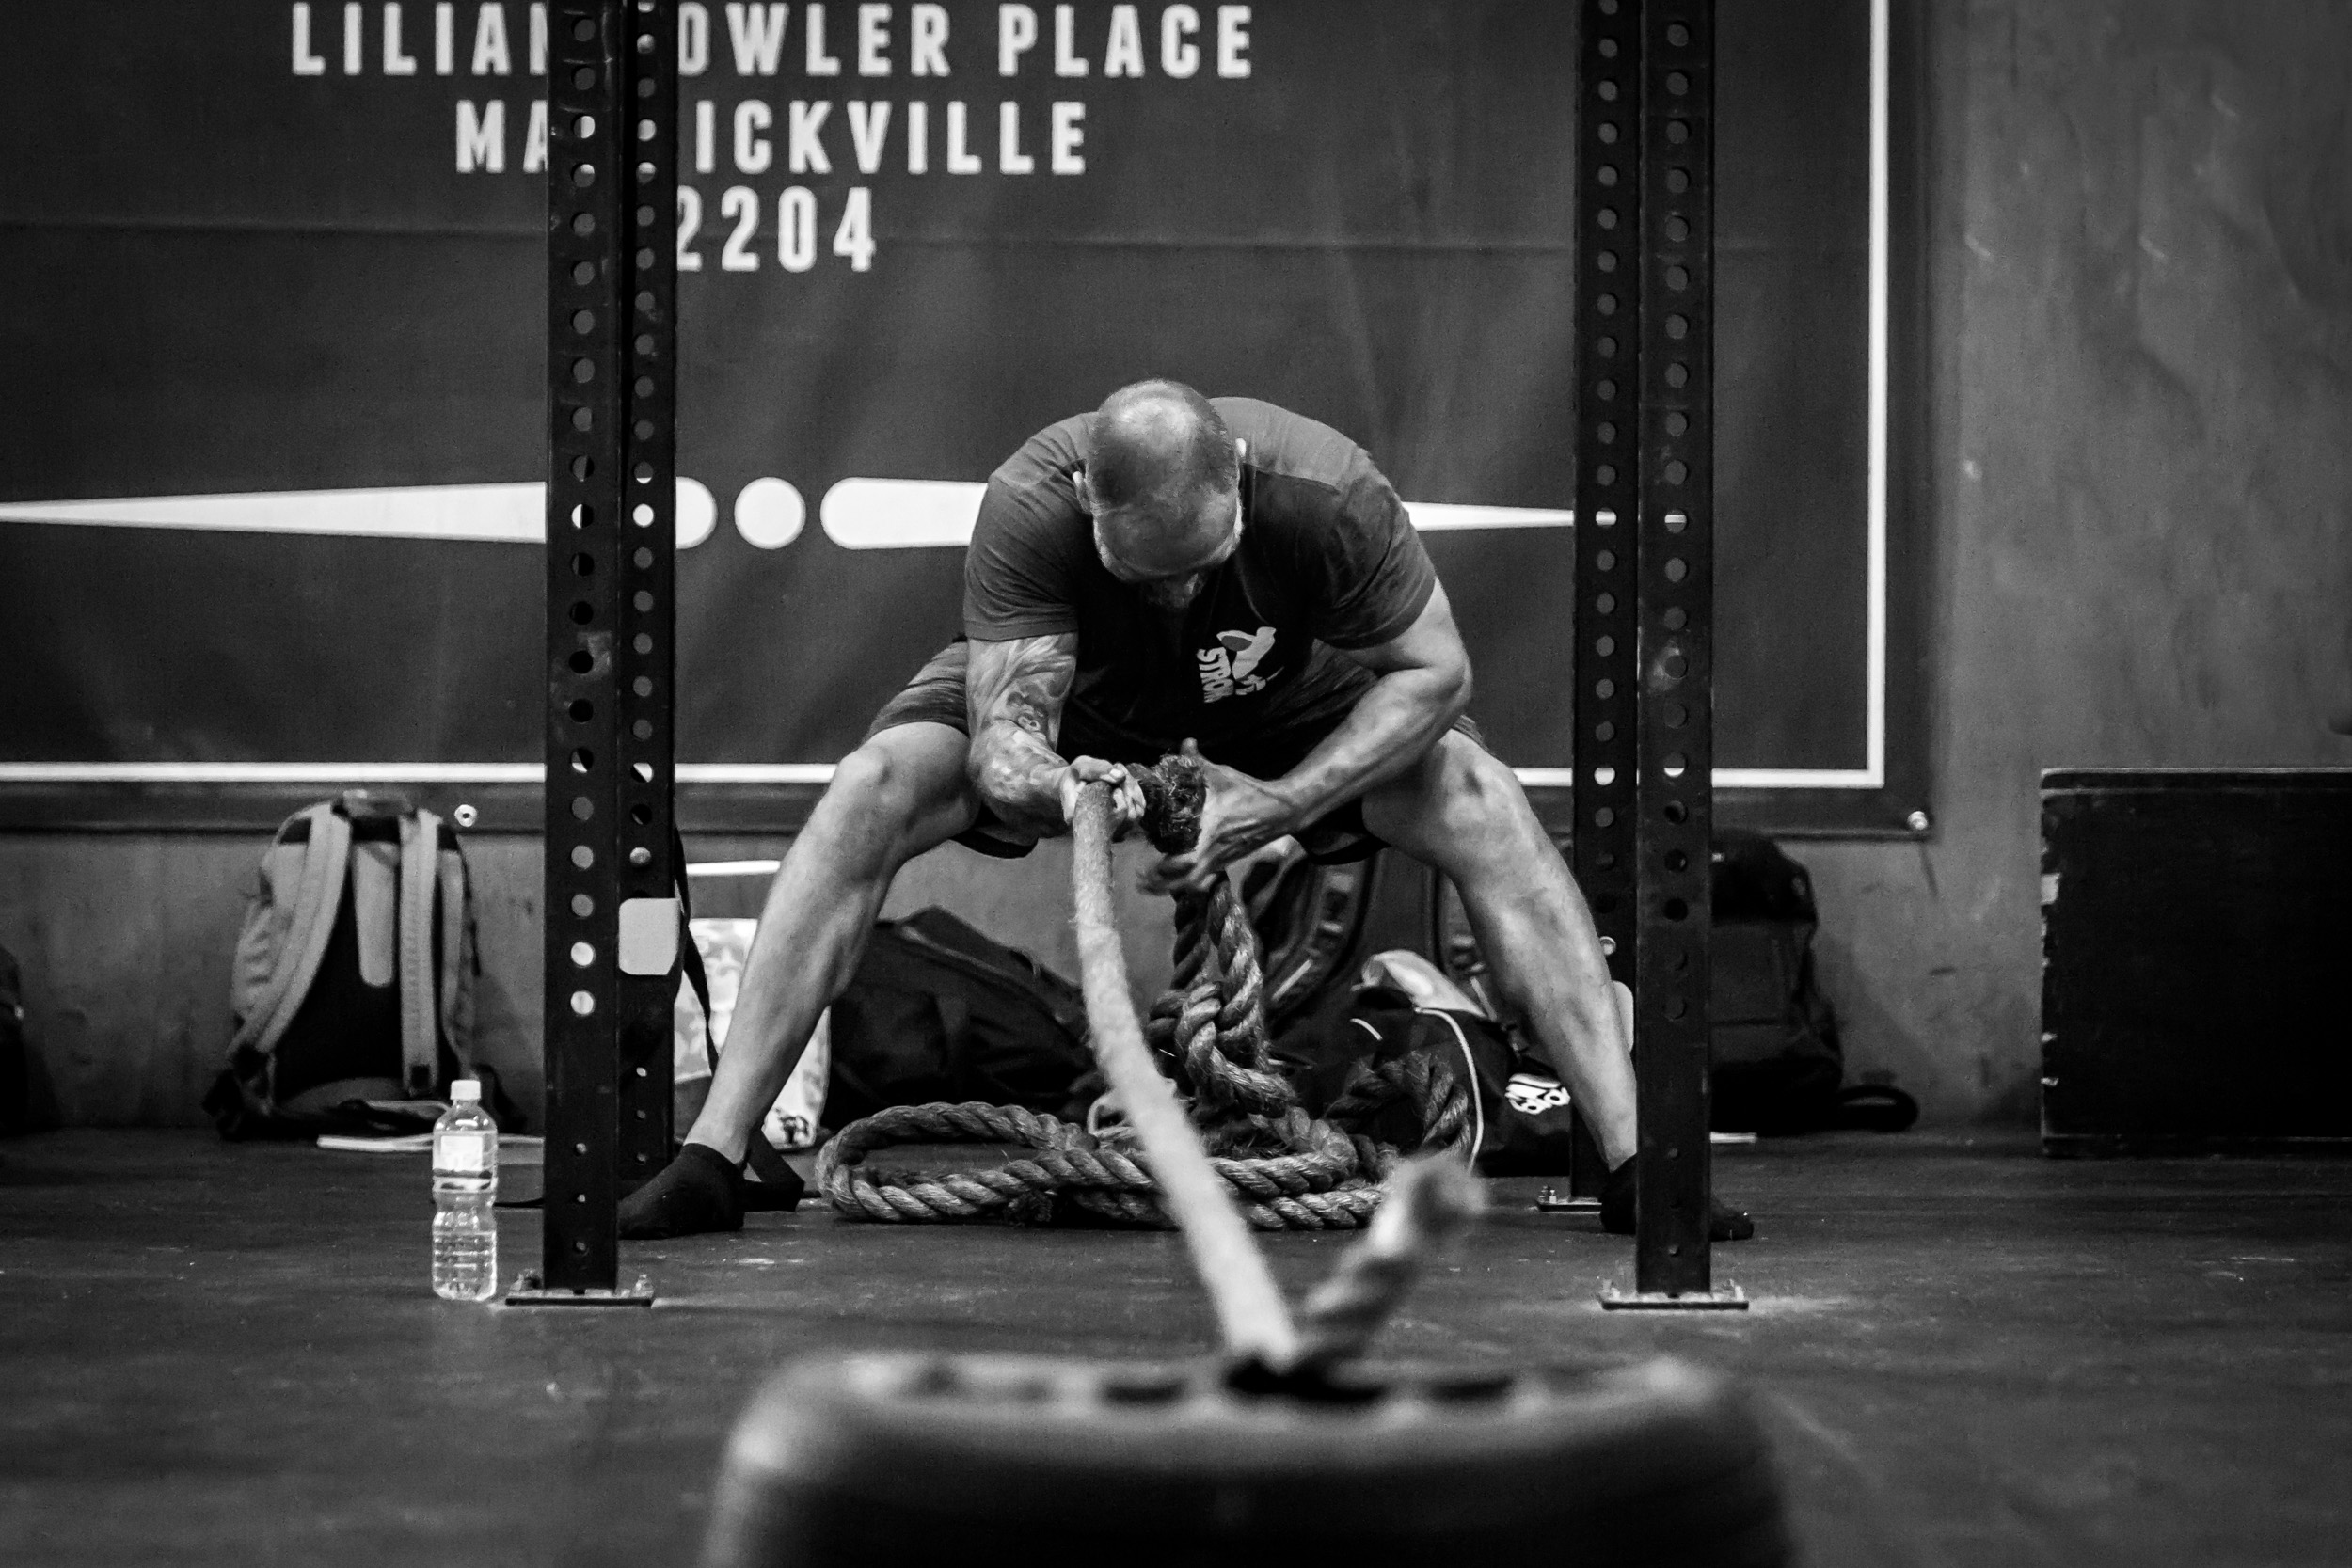 Thuc was highly professional and delivered awesome images we will be using for a variety of marketing initiatives.  Communication was smooth and editing was fast so we could use our images right away.   JULIEN PINEAU    Founder, StrongFit